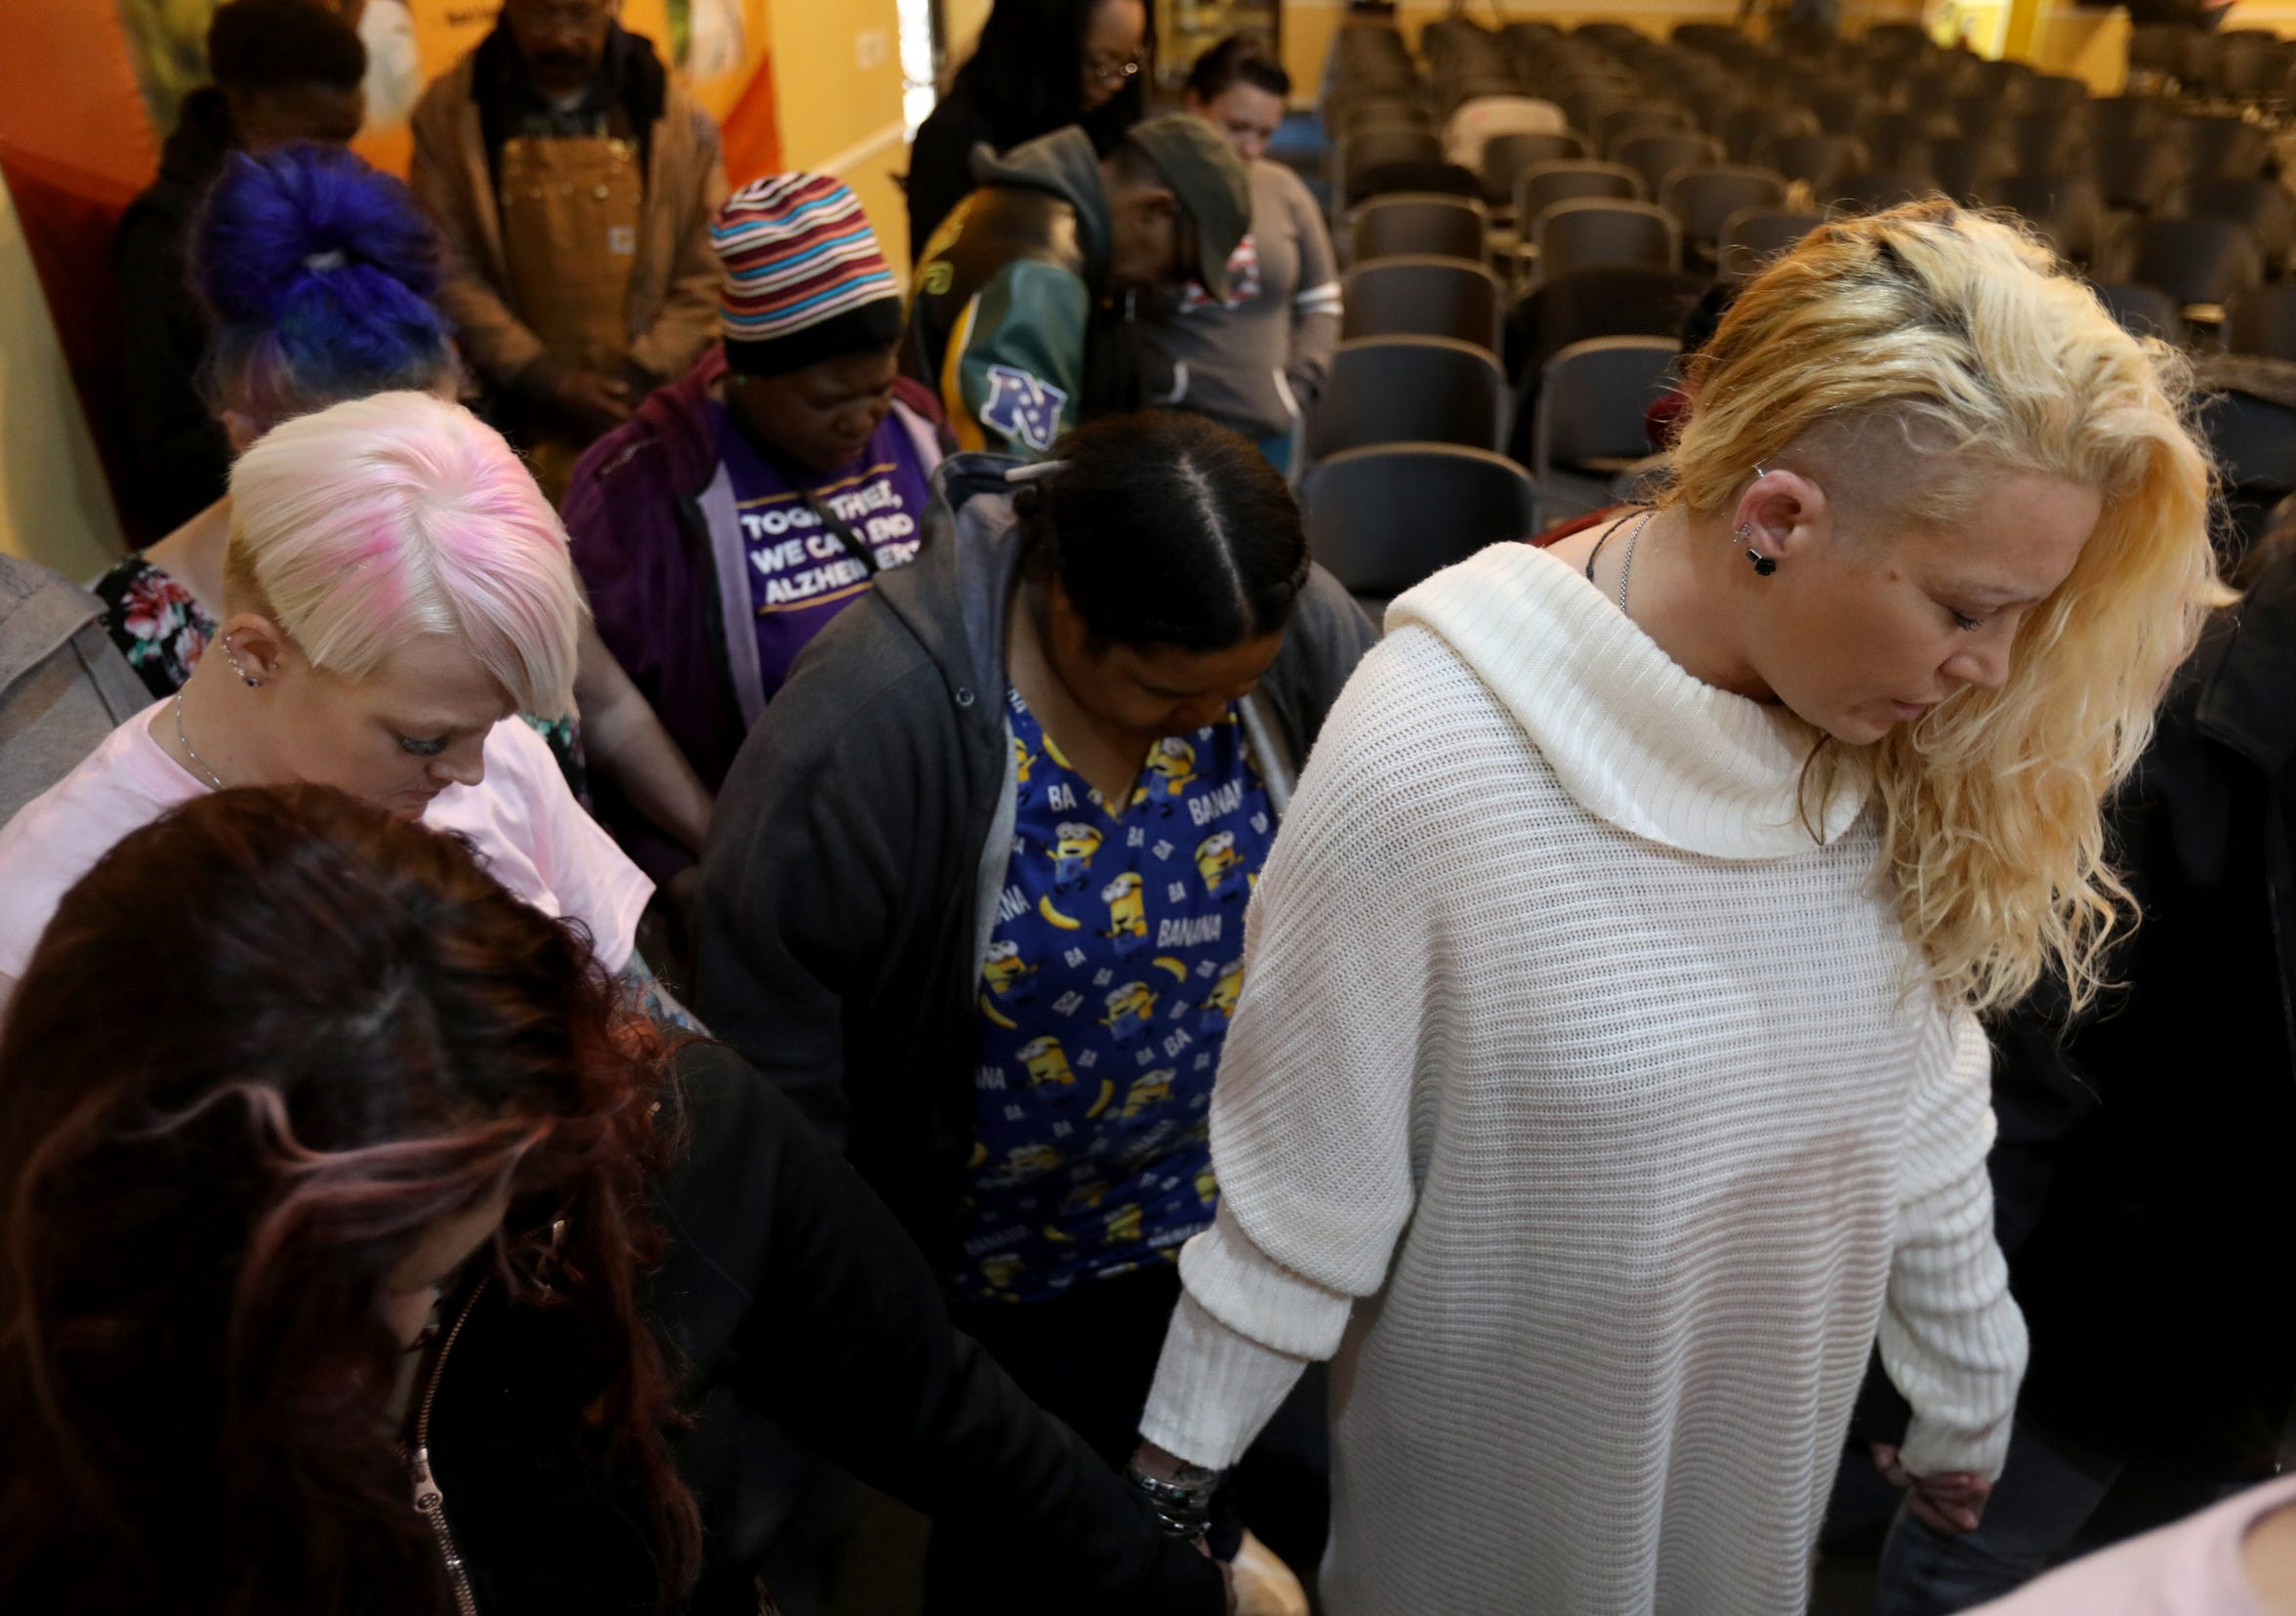 Megan Crisp, far right, holds hands with others during a prayer session in the chapel at the former Cantrell Funeral Home in Detroit on Saturday, October 27, 2018. A prayer breakfast was held for the remains of the fetuses found in a ceiling.